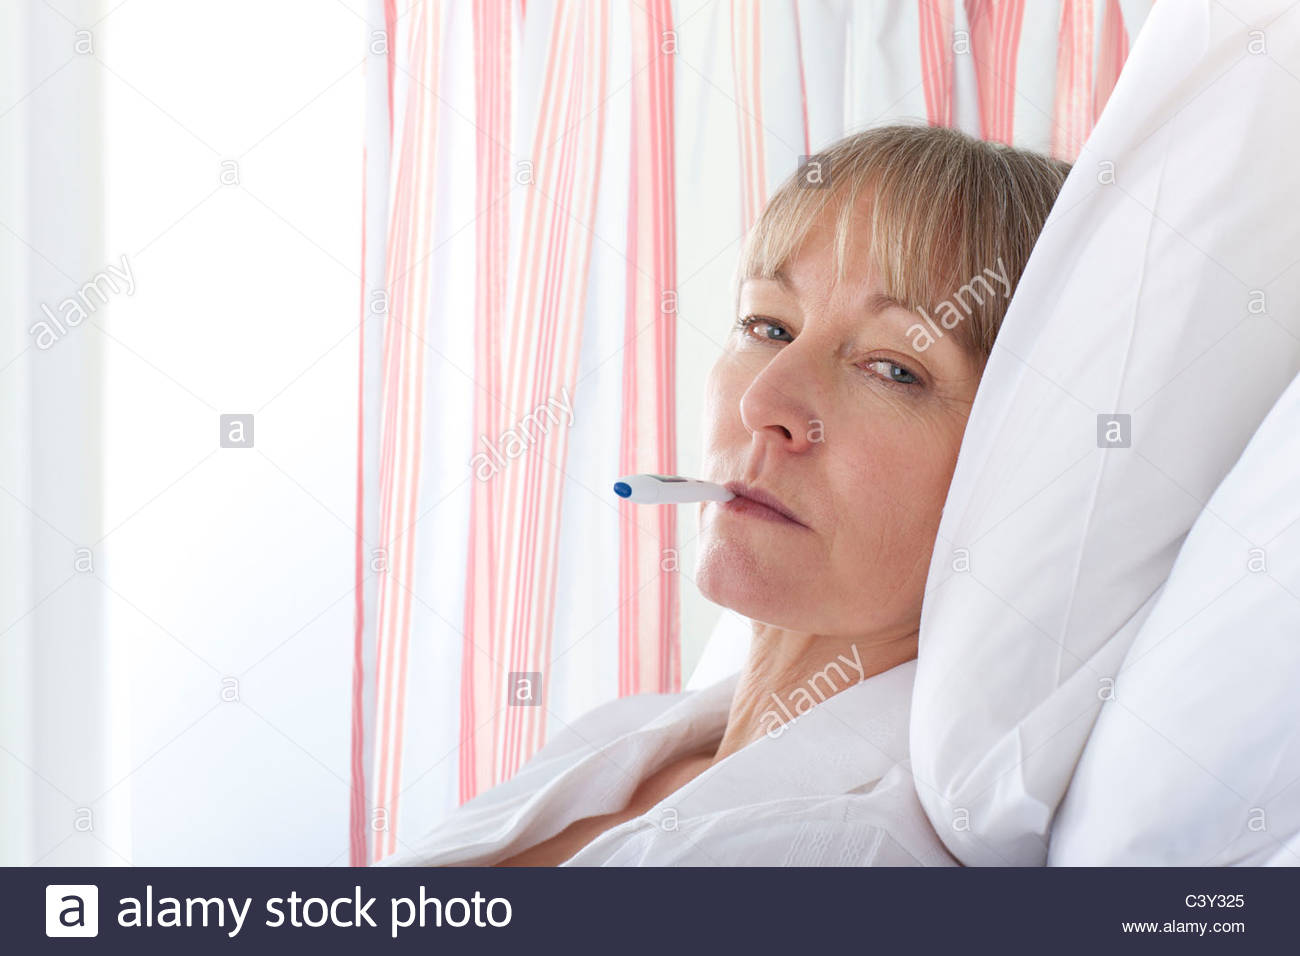 Après avoir pris la température du patient in hospital room Photo Stock